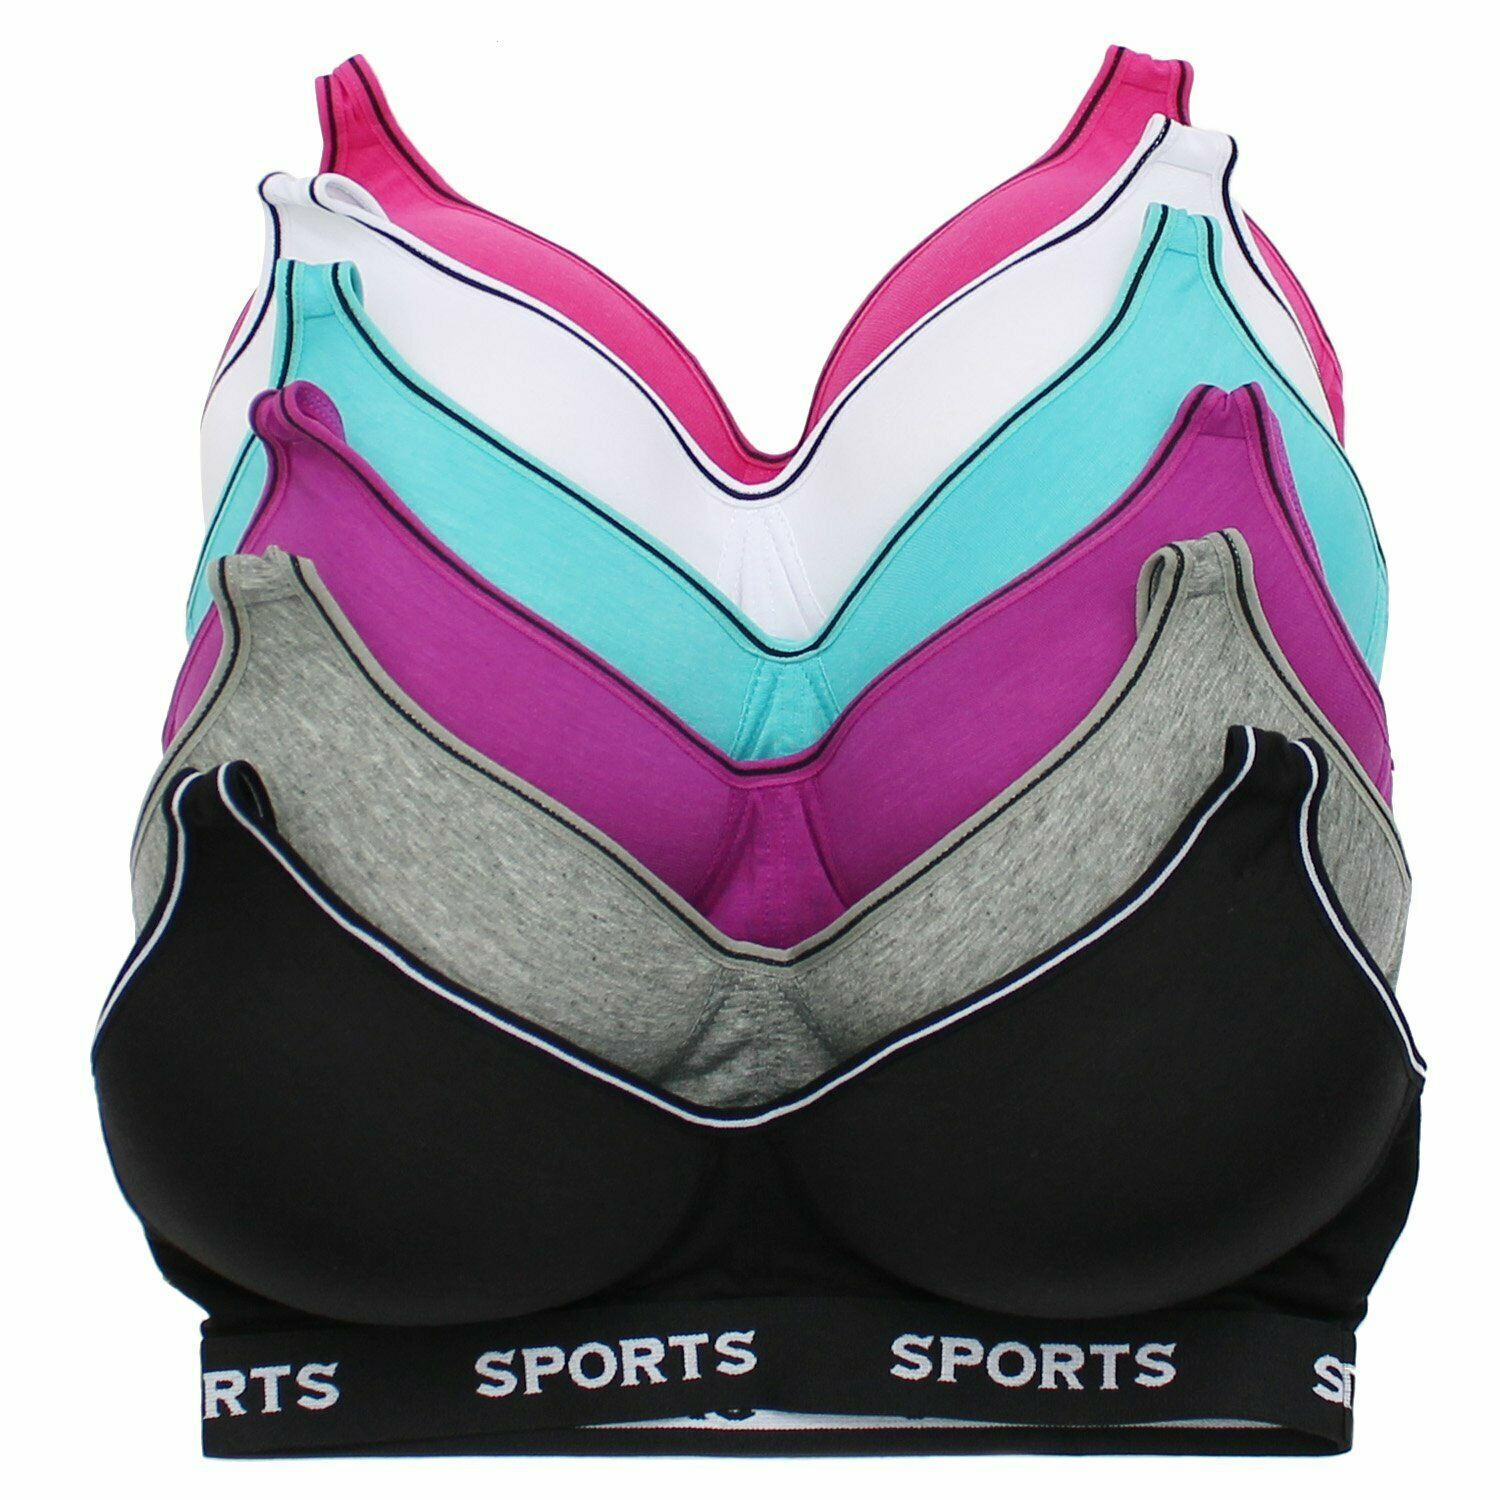 Women's Supportive Molded Cup Athleisure Sports Bra (6 piece pack)  S315